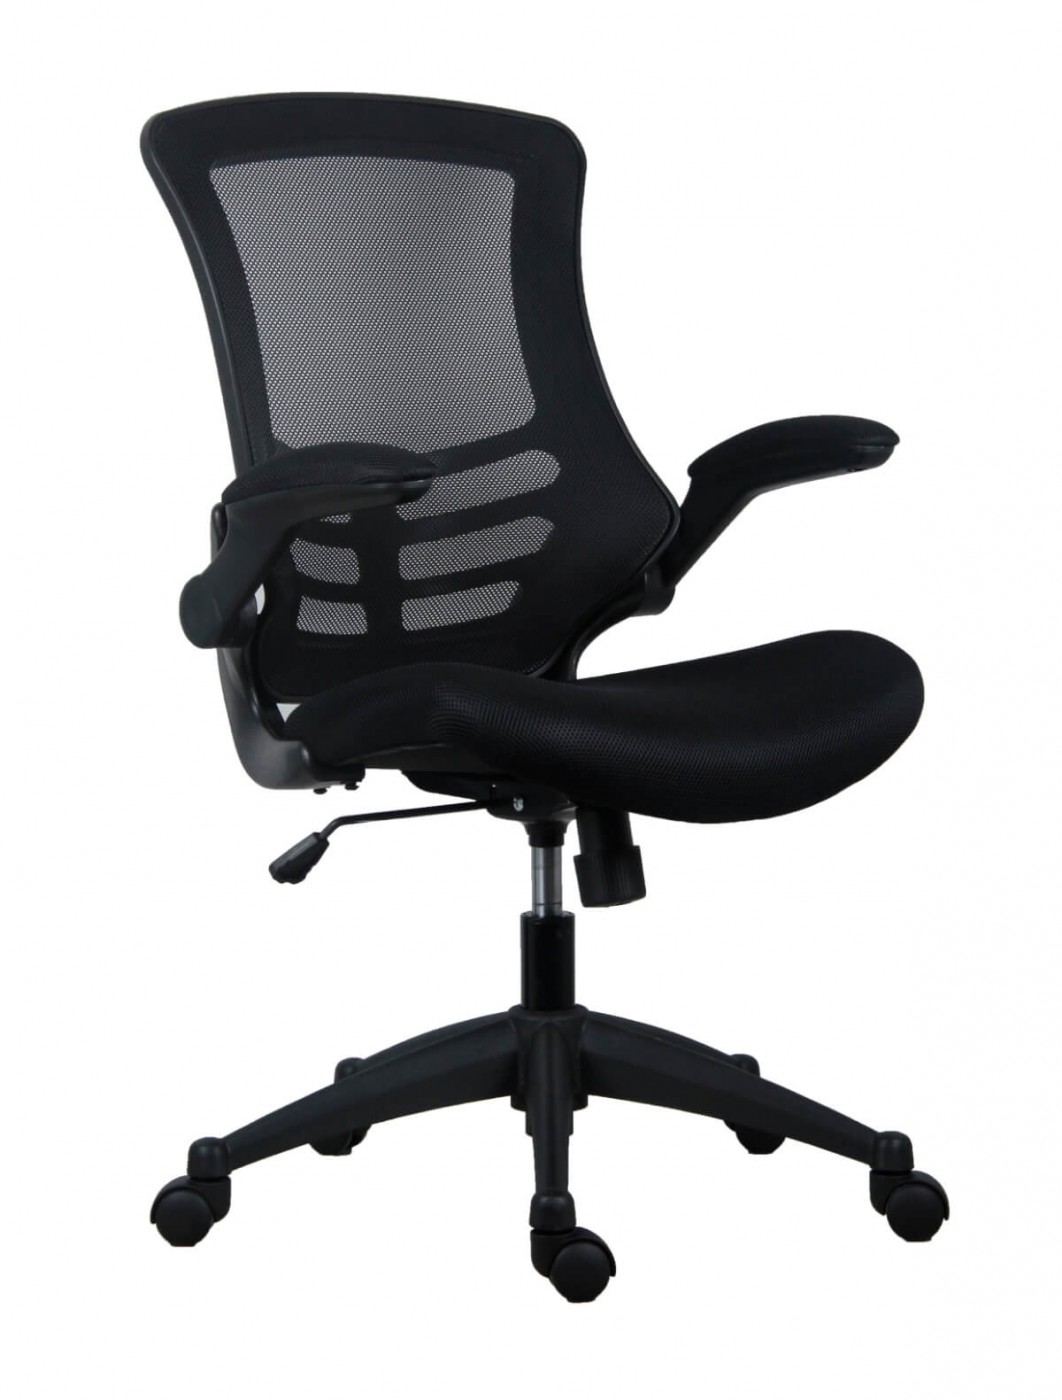 Office Chairs - Marlos Mesh Office Chair in Black CH0790BK ...